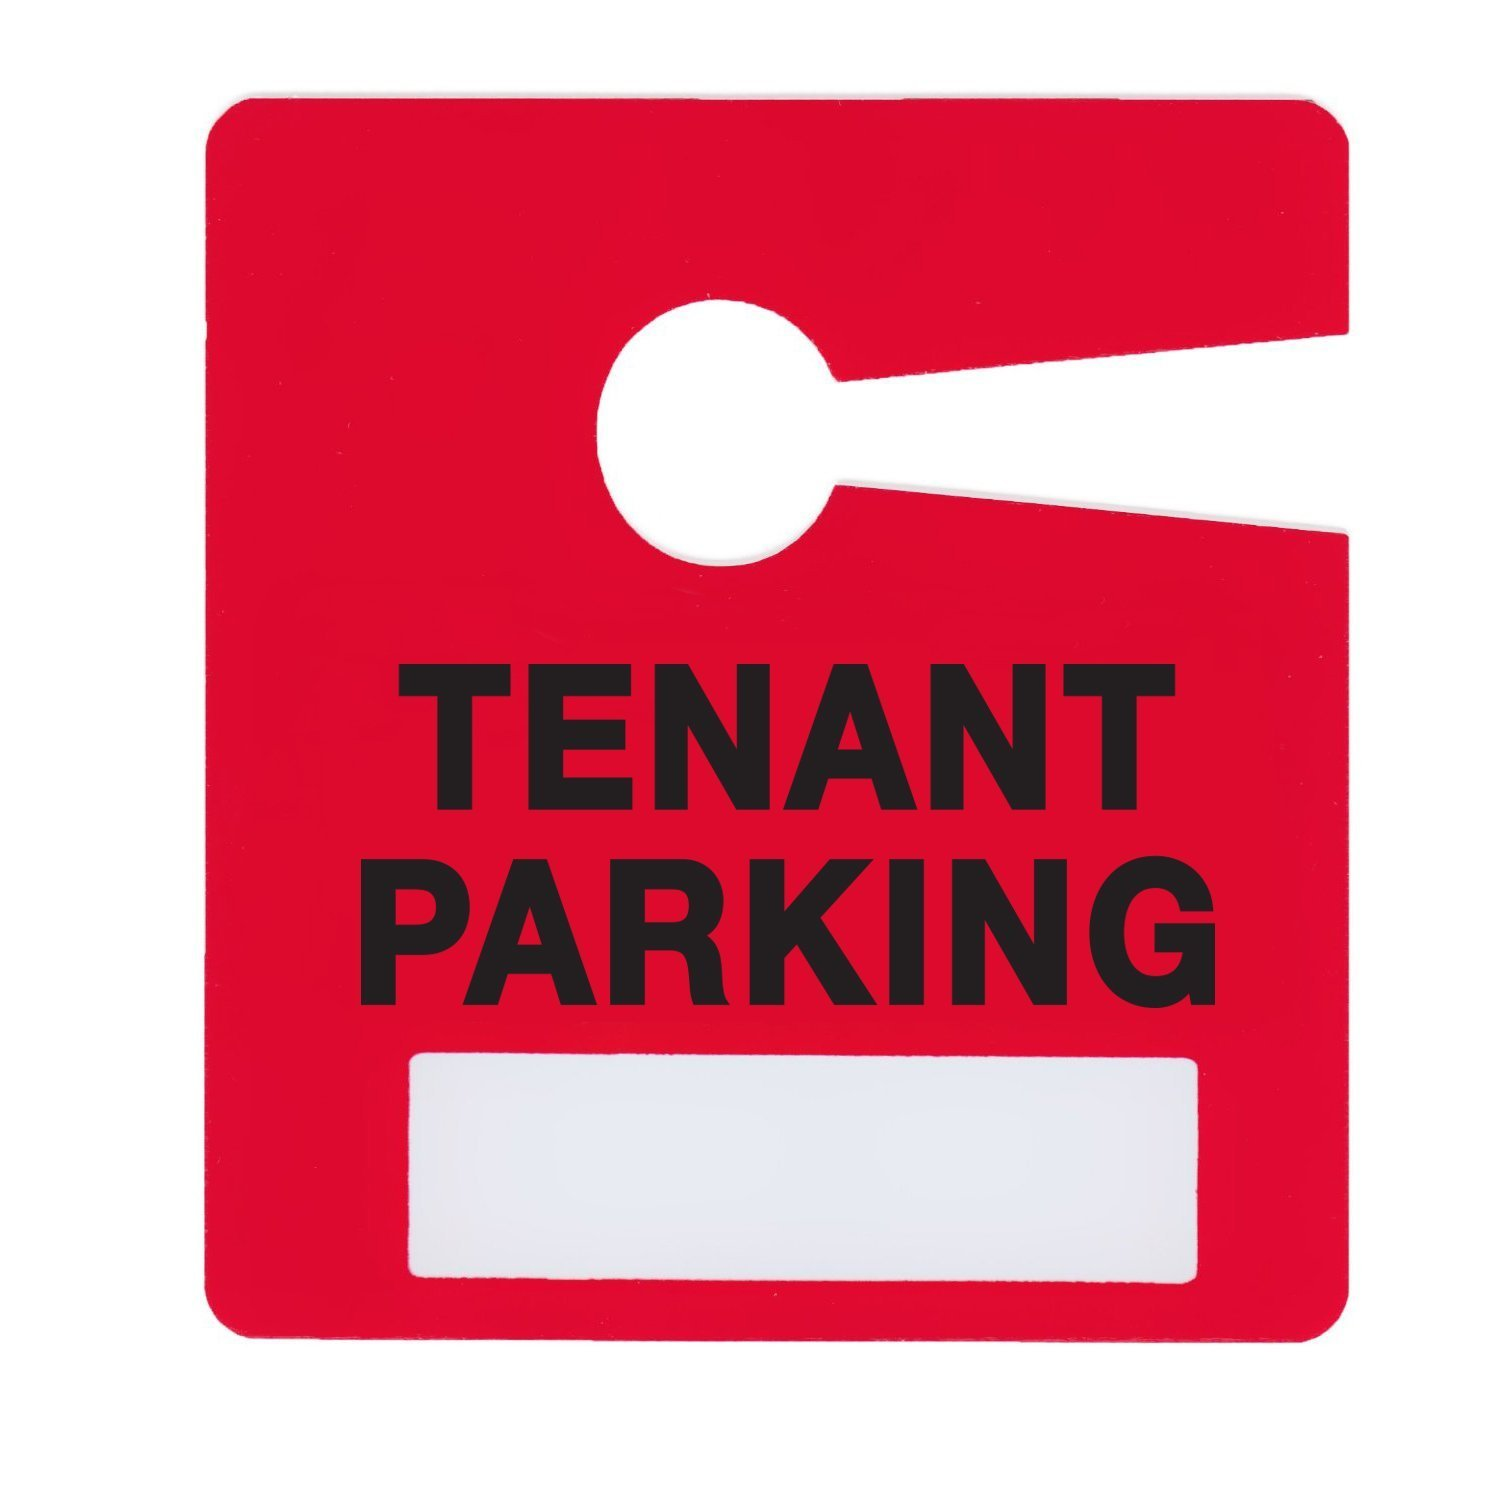 Tenant Parking Permit Pass Stock Hang Tags for Landlords, Commercial Office Buildings, Car Lots, Apartments, by Milcoast,10 Pack (Red)